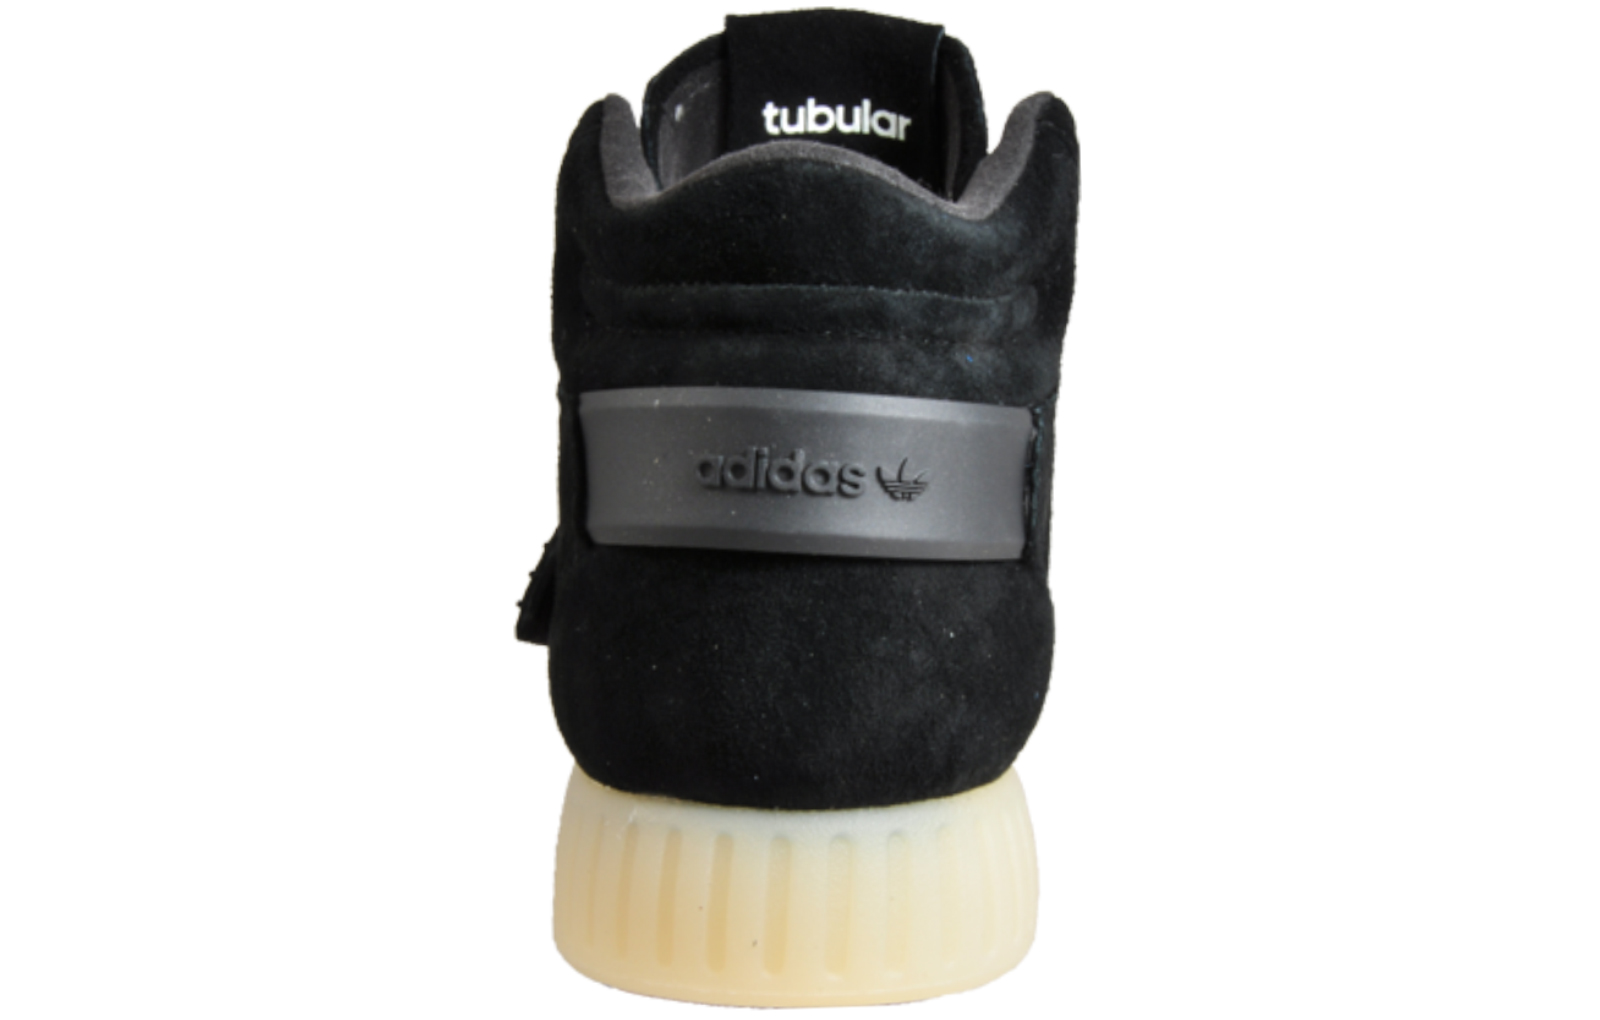 5dddd4a055498 Adidas Originals Tubular Invader Strap Men s Suede Leather Mid Top Trainers